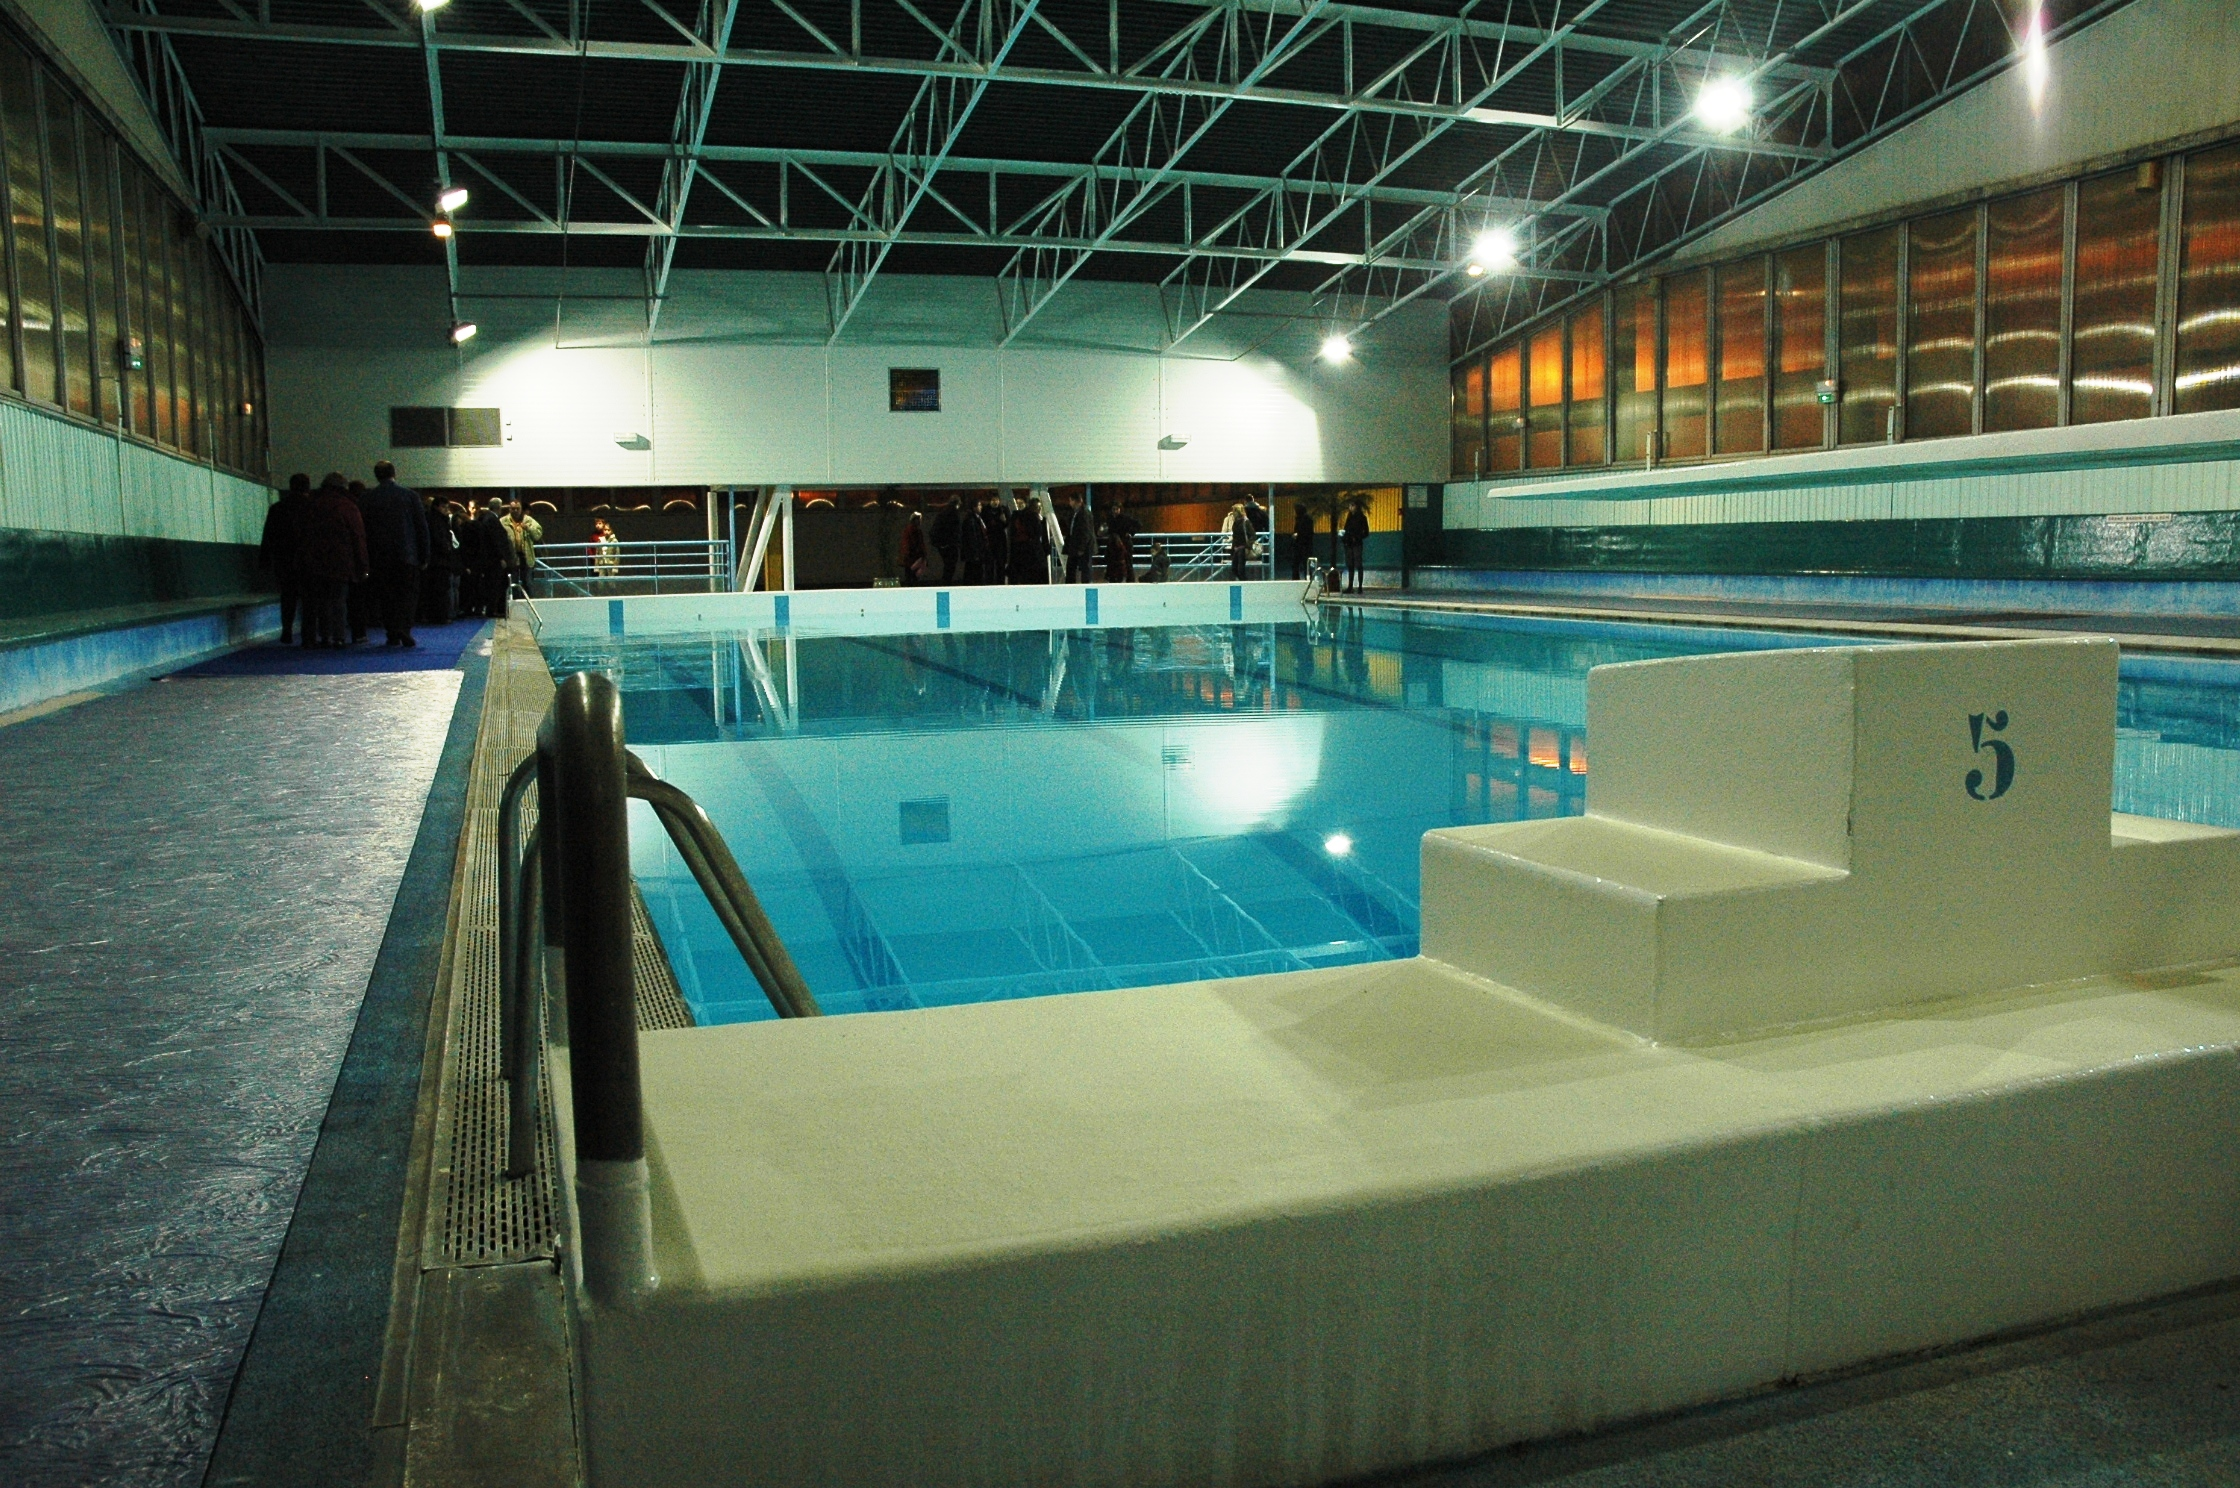 La piscine culture sports loisirs ville de saint andr for Piscine de saint avold